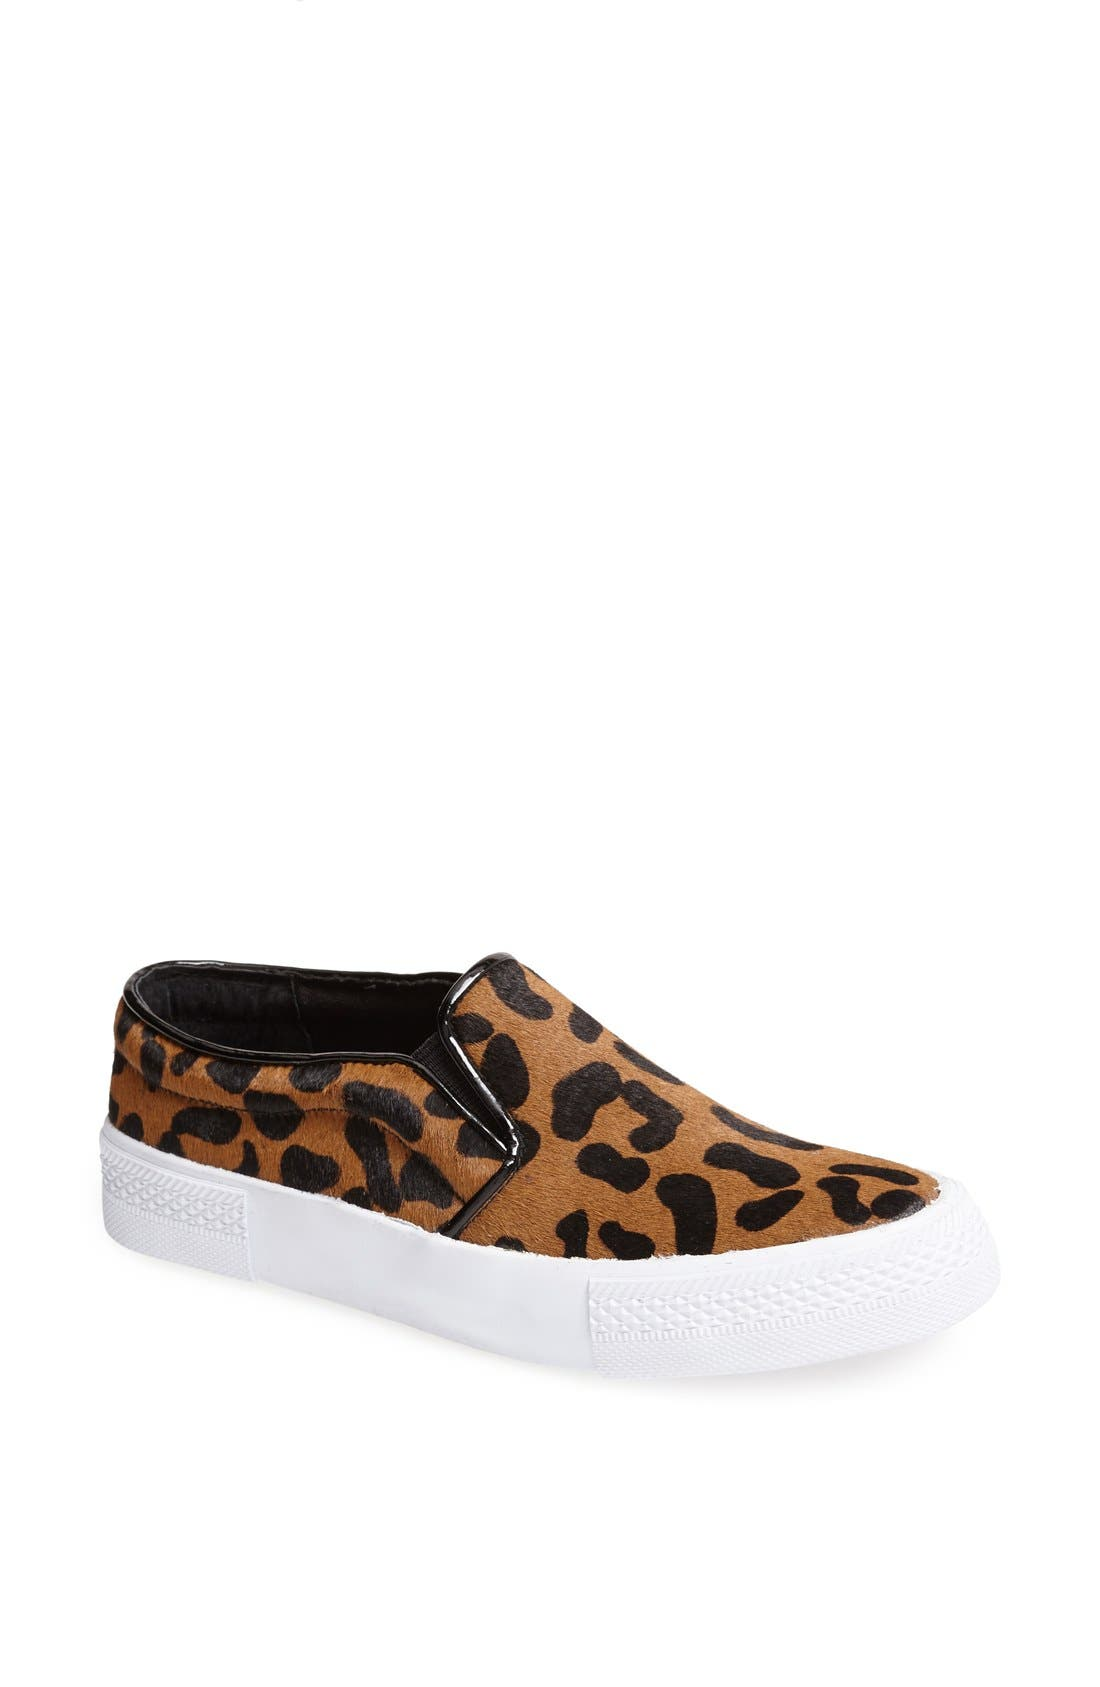 STEVE MADDEN,                             The Blonde Salad x Steve Madden 'NYC' Sneaker,                             Main thumbnail 1, color,                             200